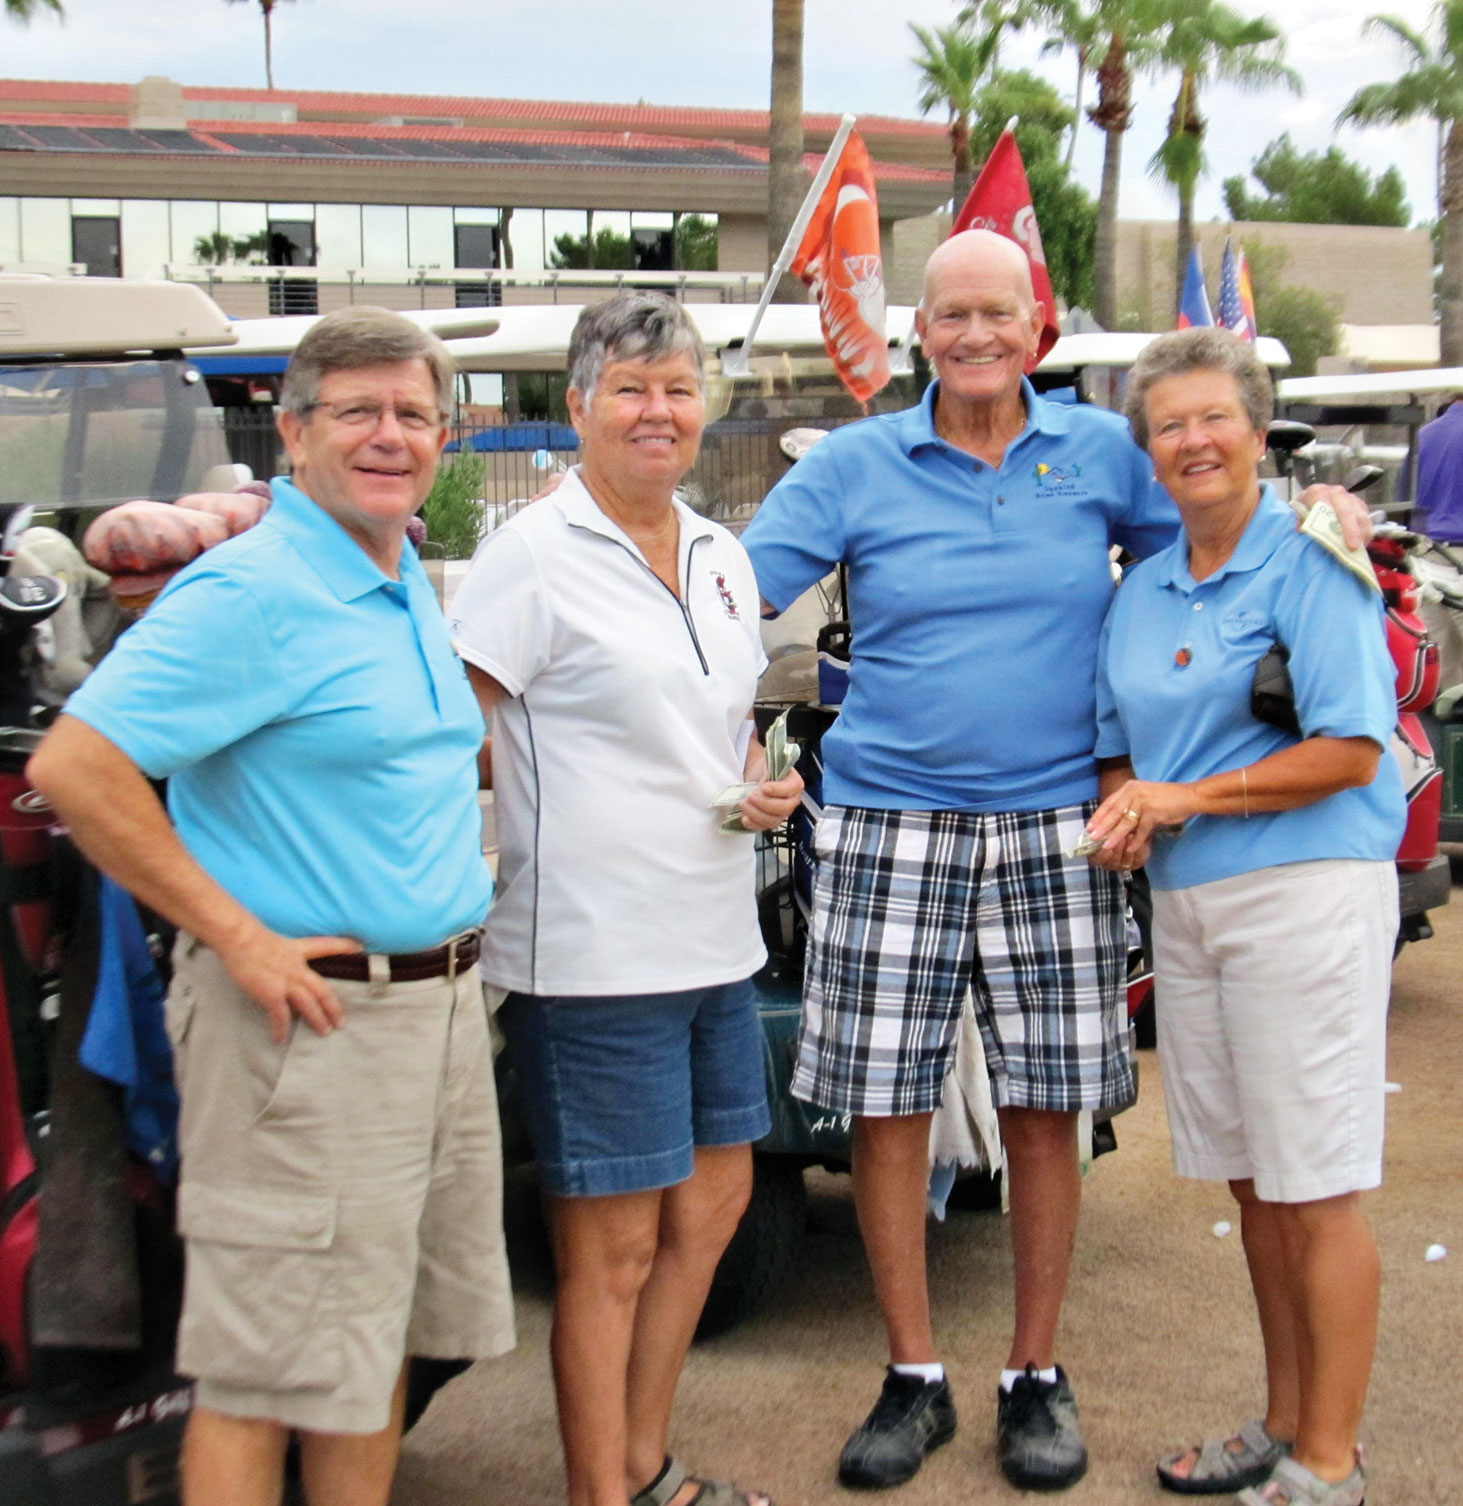 Winners of the second annual Roadrunner/Bandit Scramble from left are Gordon Lee, Connie Franklin, Jim Dolwick and Marsha Brockish.